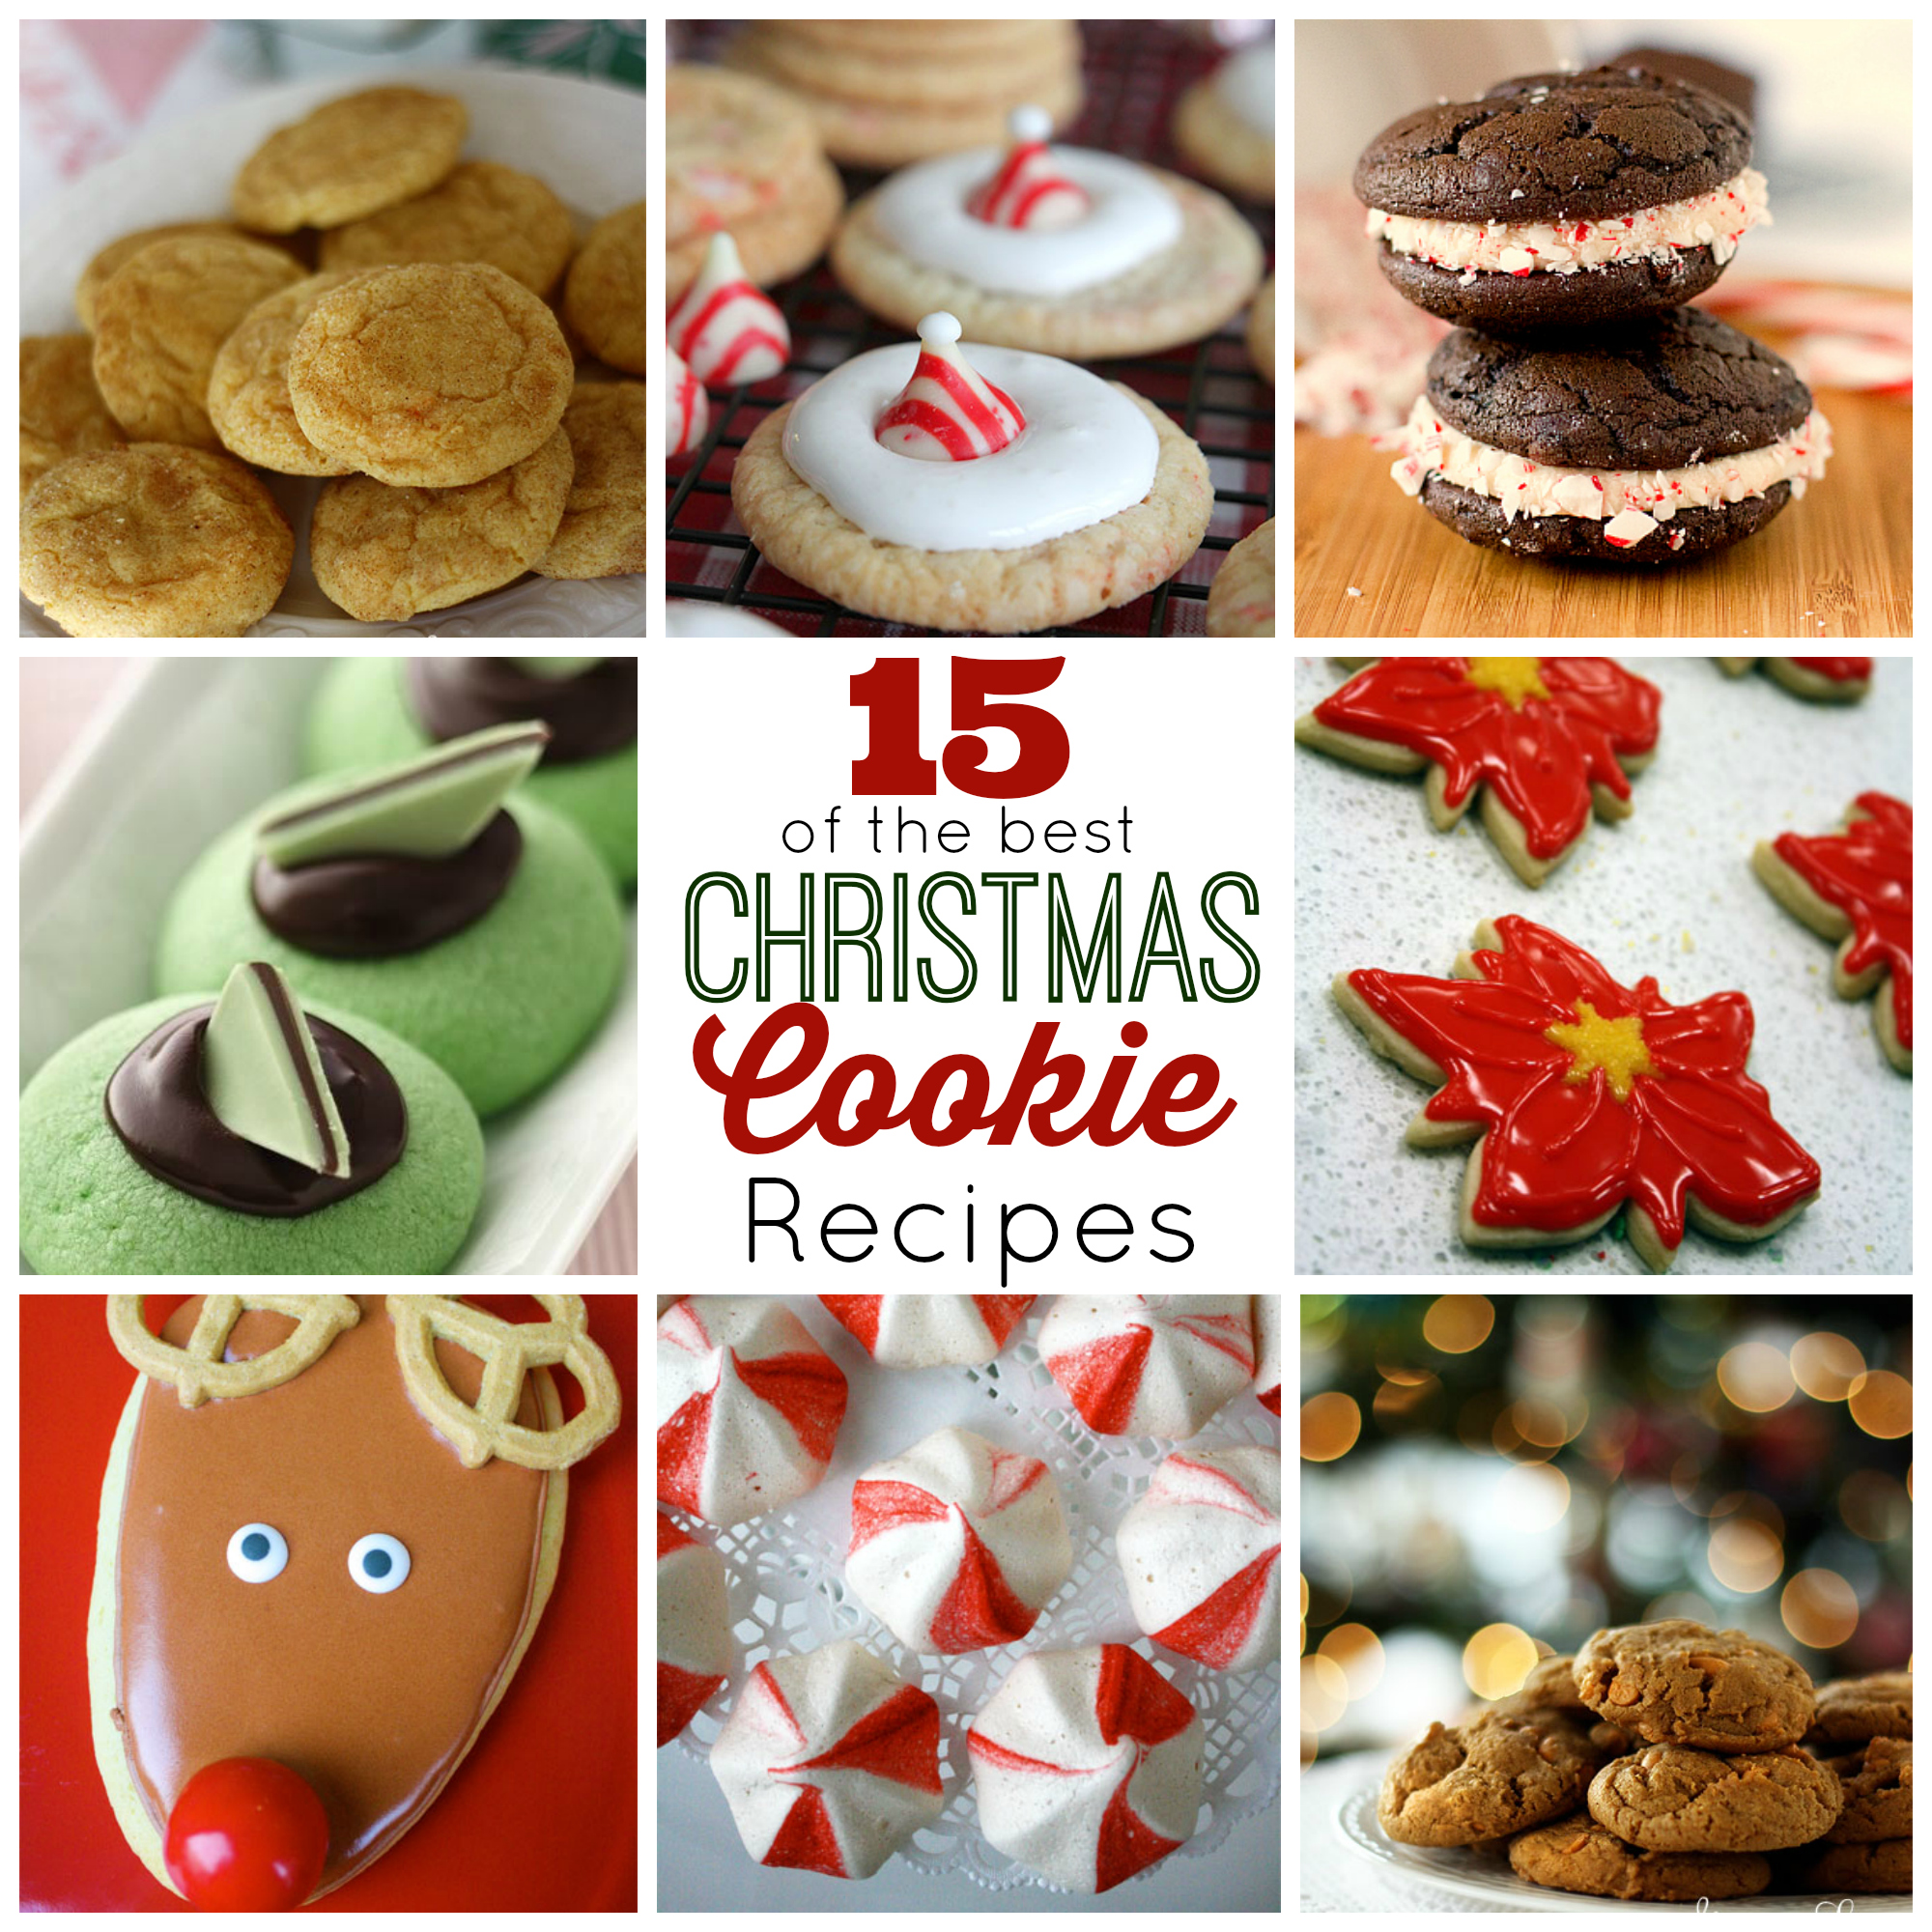 chirstmas cookie recipes - Simple Christmas Cookies